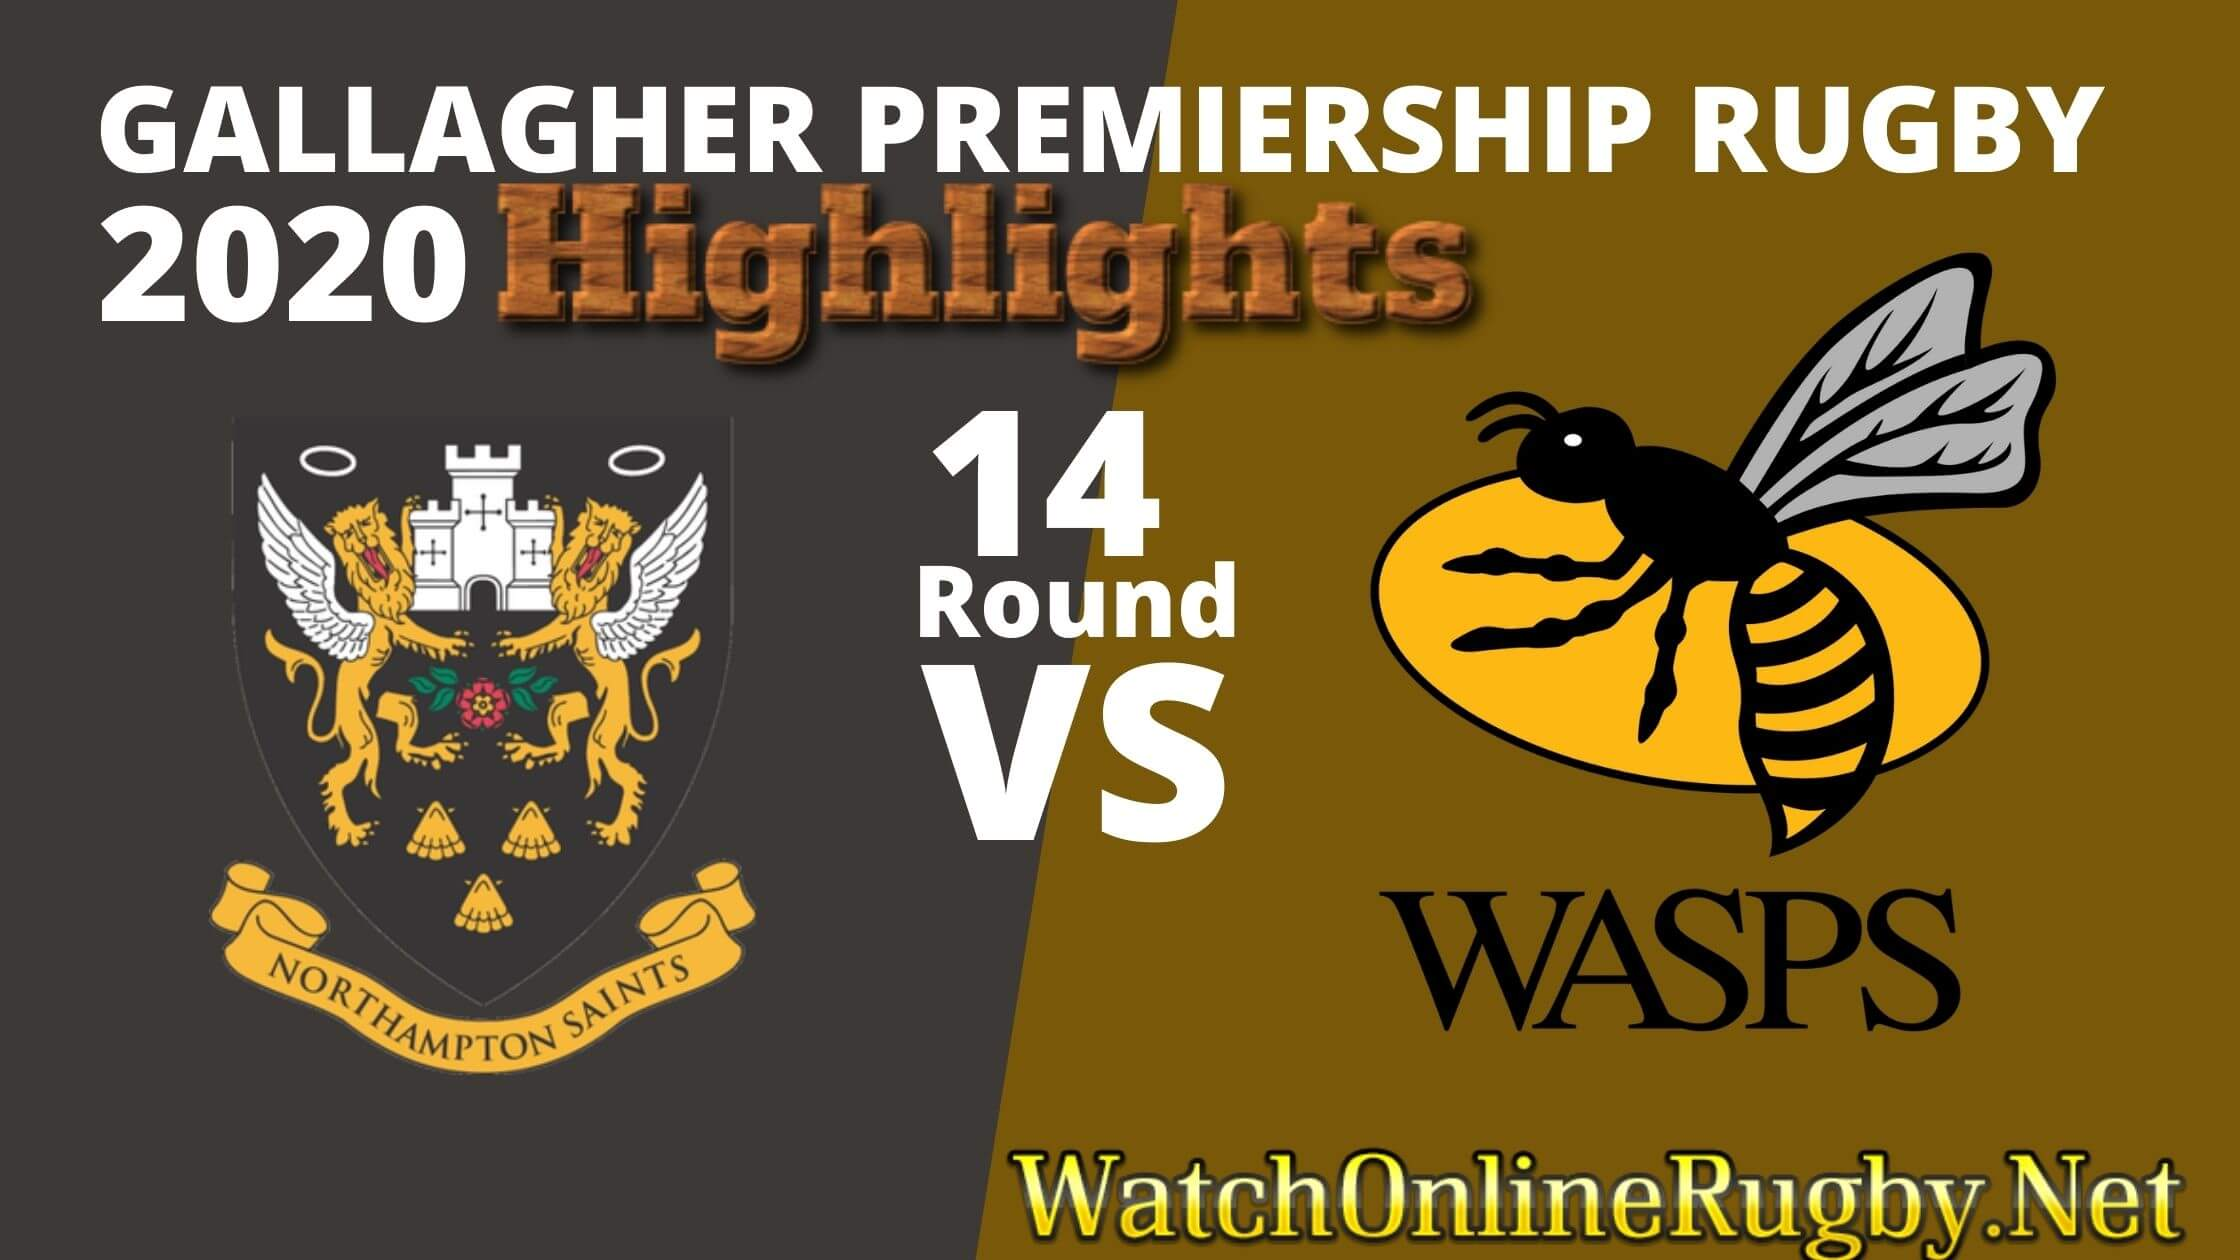 Northampton Saints Vs Wasps Highlights 2020 Rd 14 Premiership Rugby